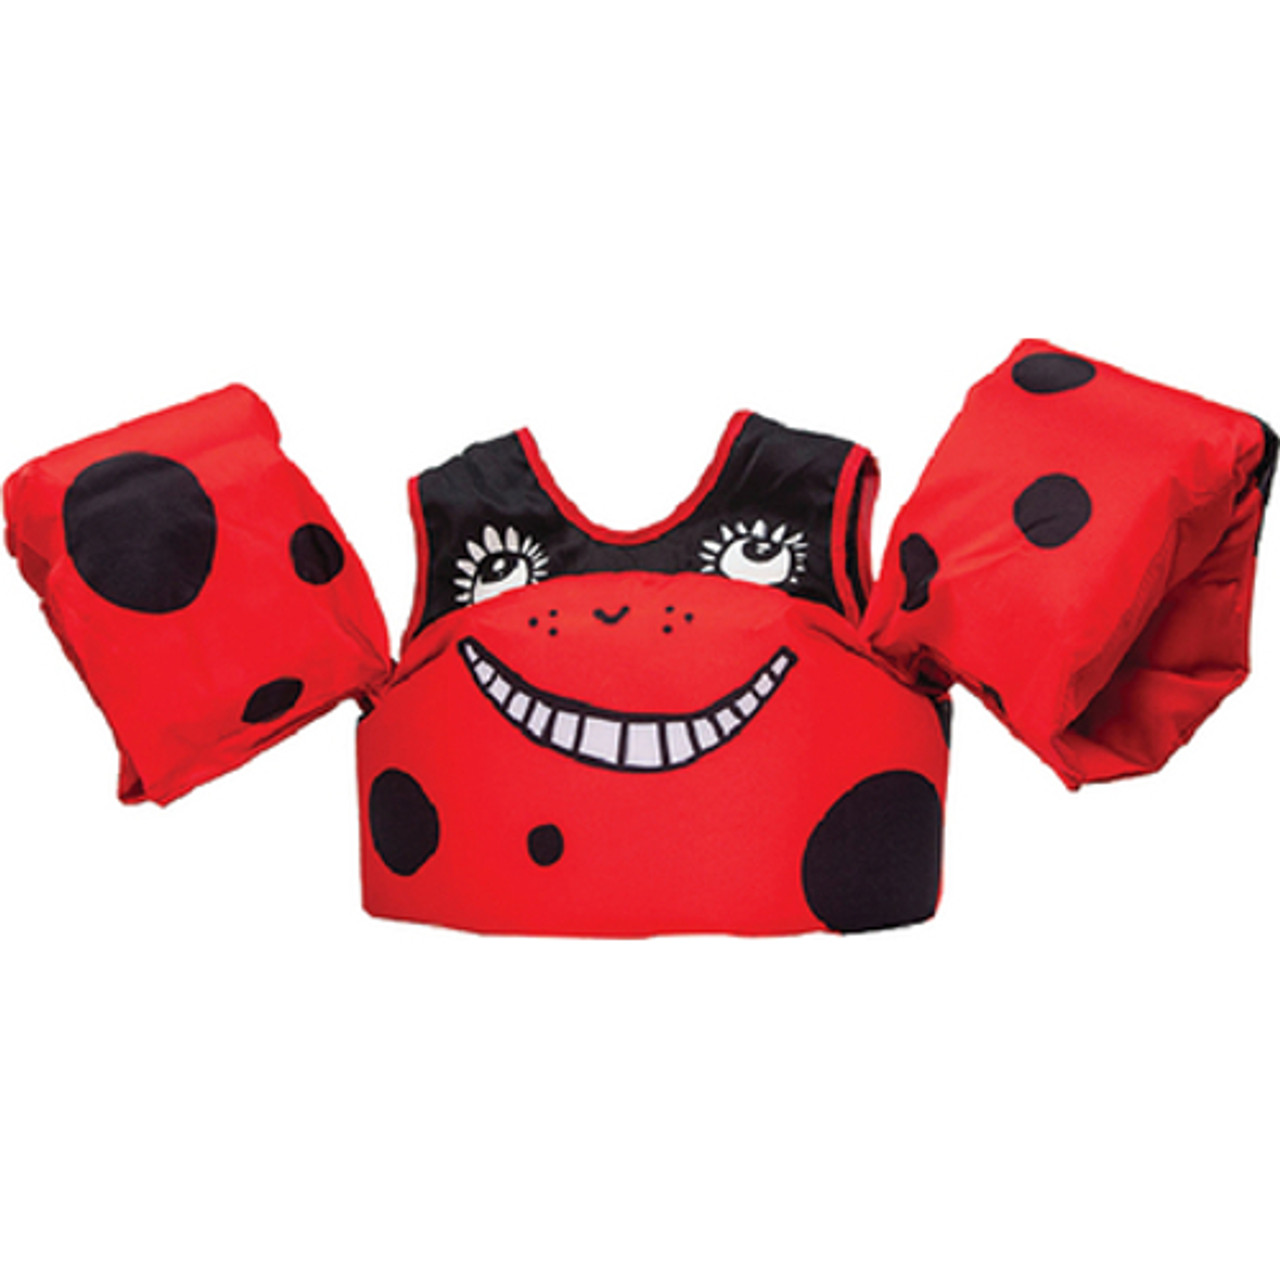 Body Glove Lady Bug Paddle Pals Child Type III PFD Safety & Life Vest for Boats